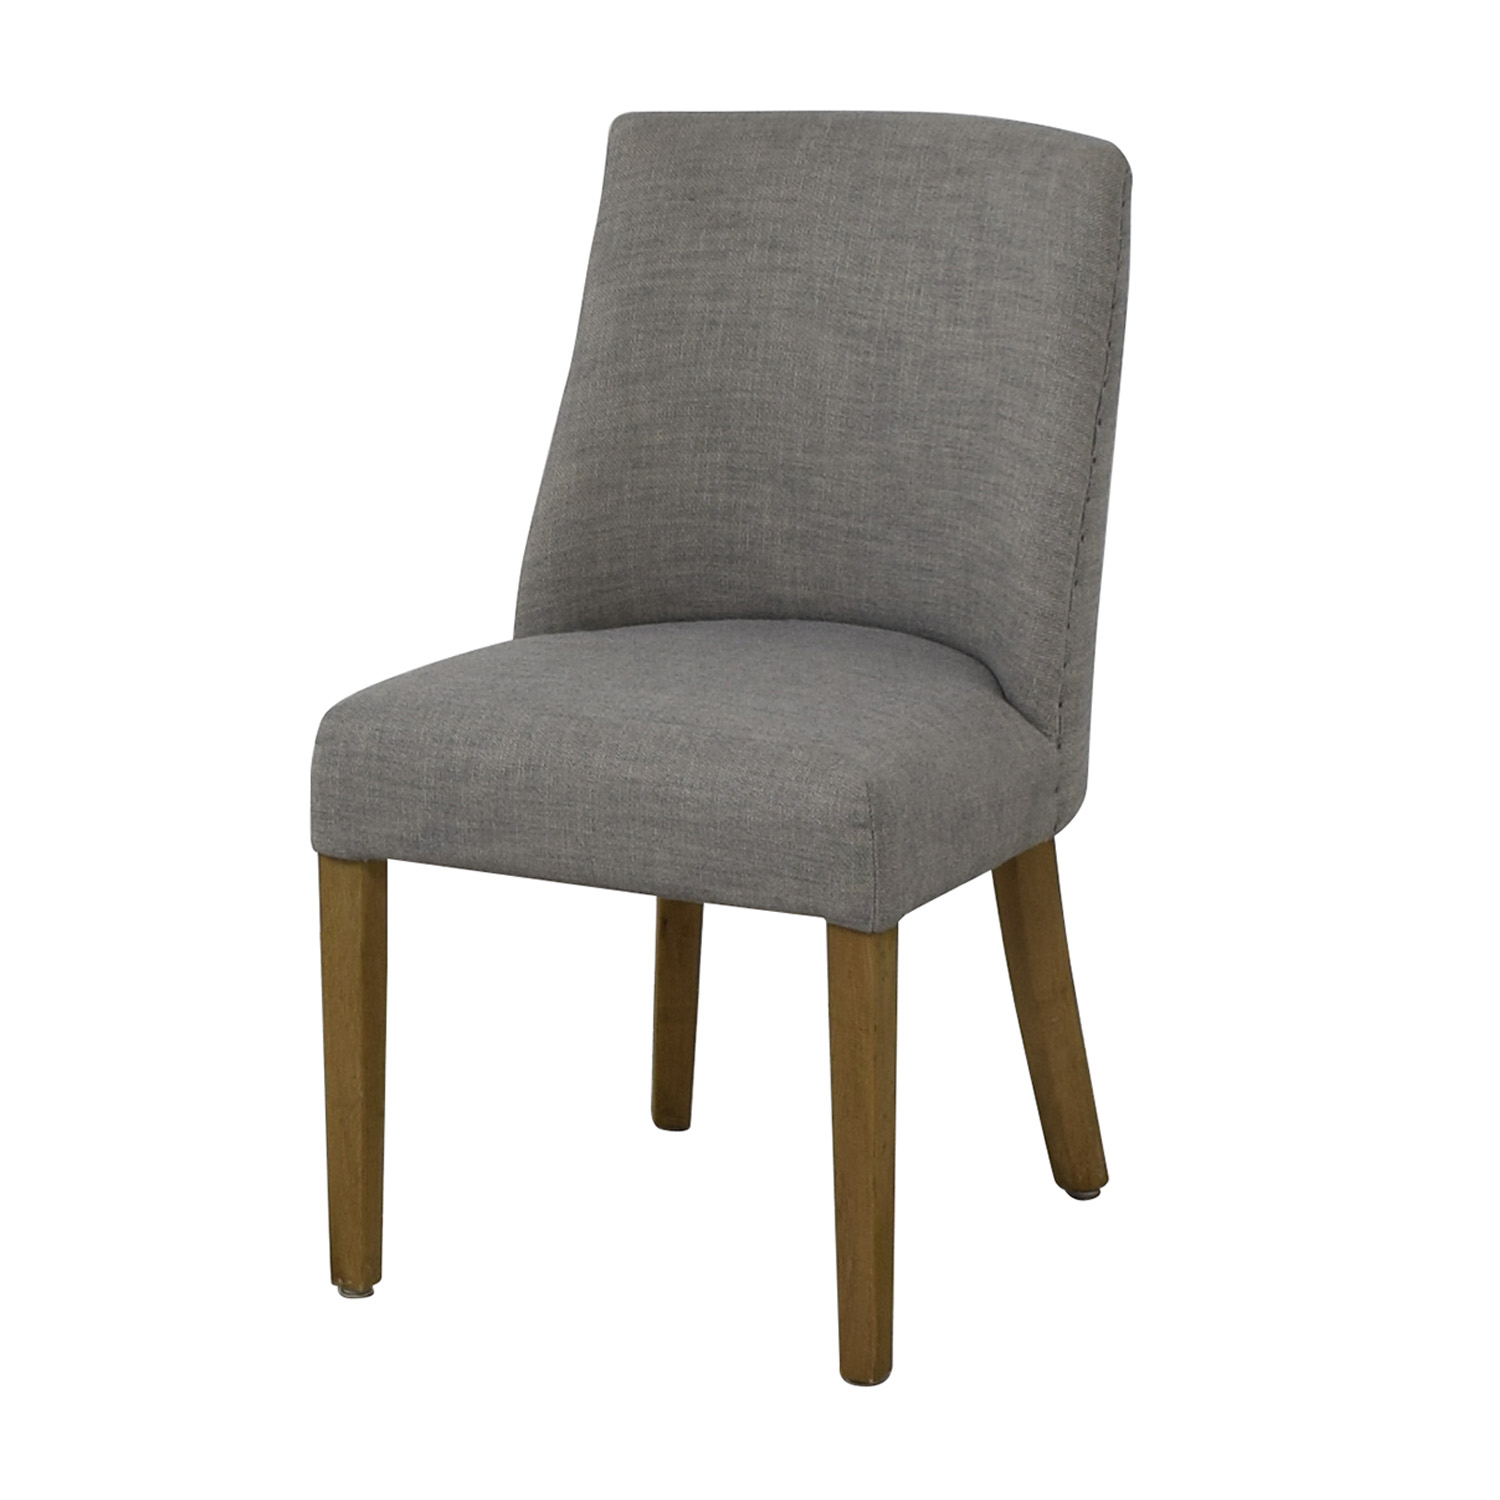 Restoration Hardware Restoration Hardware 1940S French Barrelback Fabric Side Chair discount